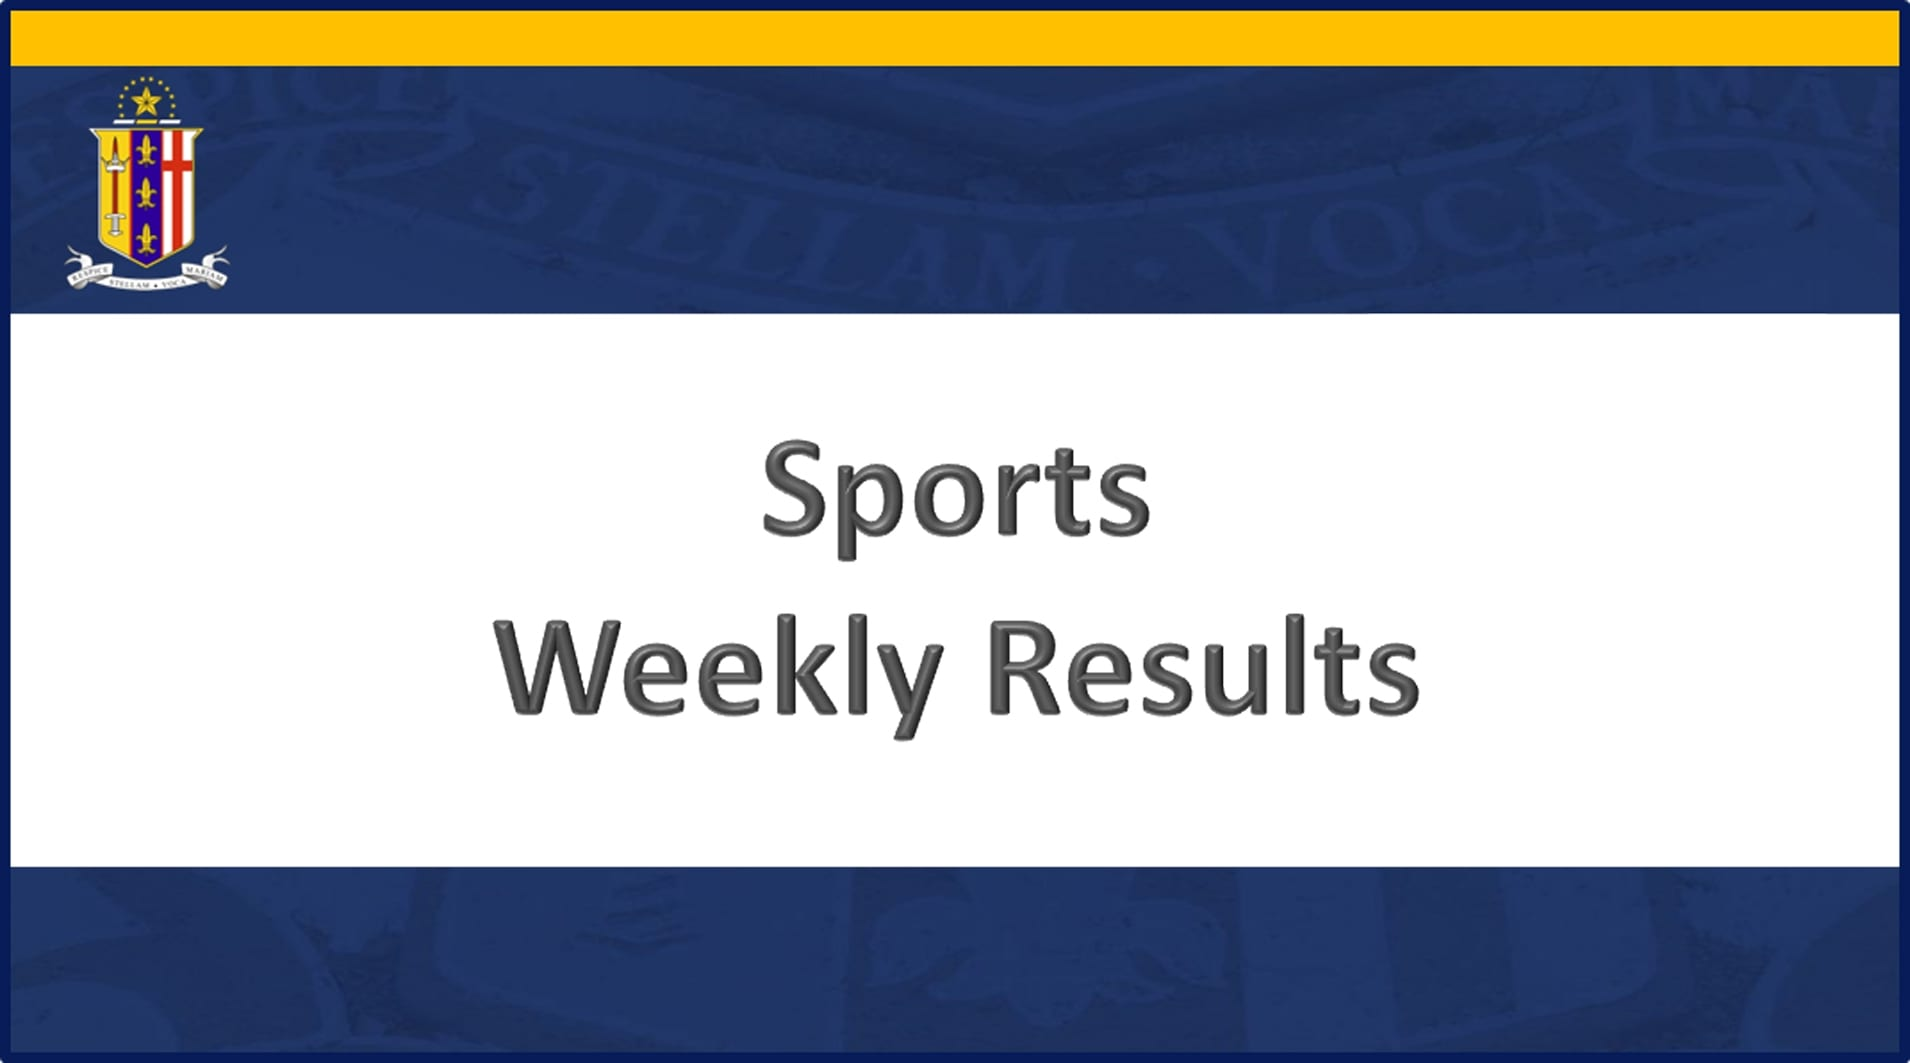 Weekly-Sports-Results